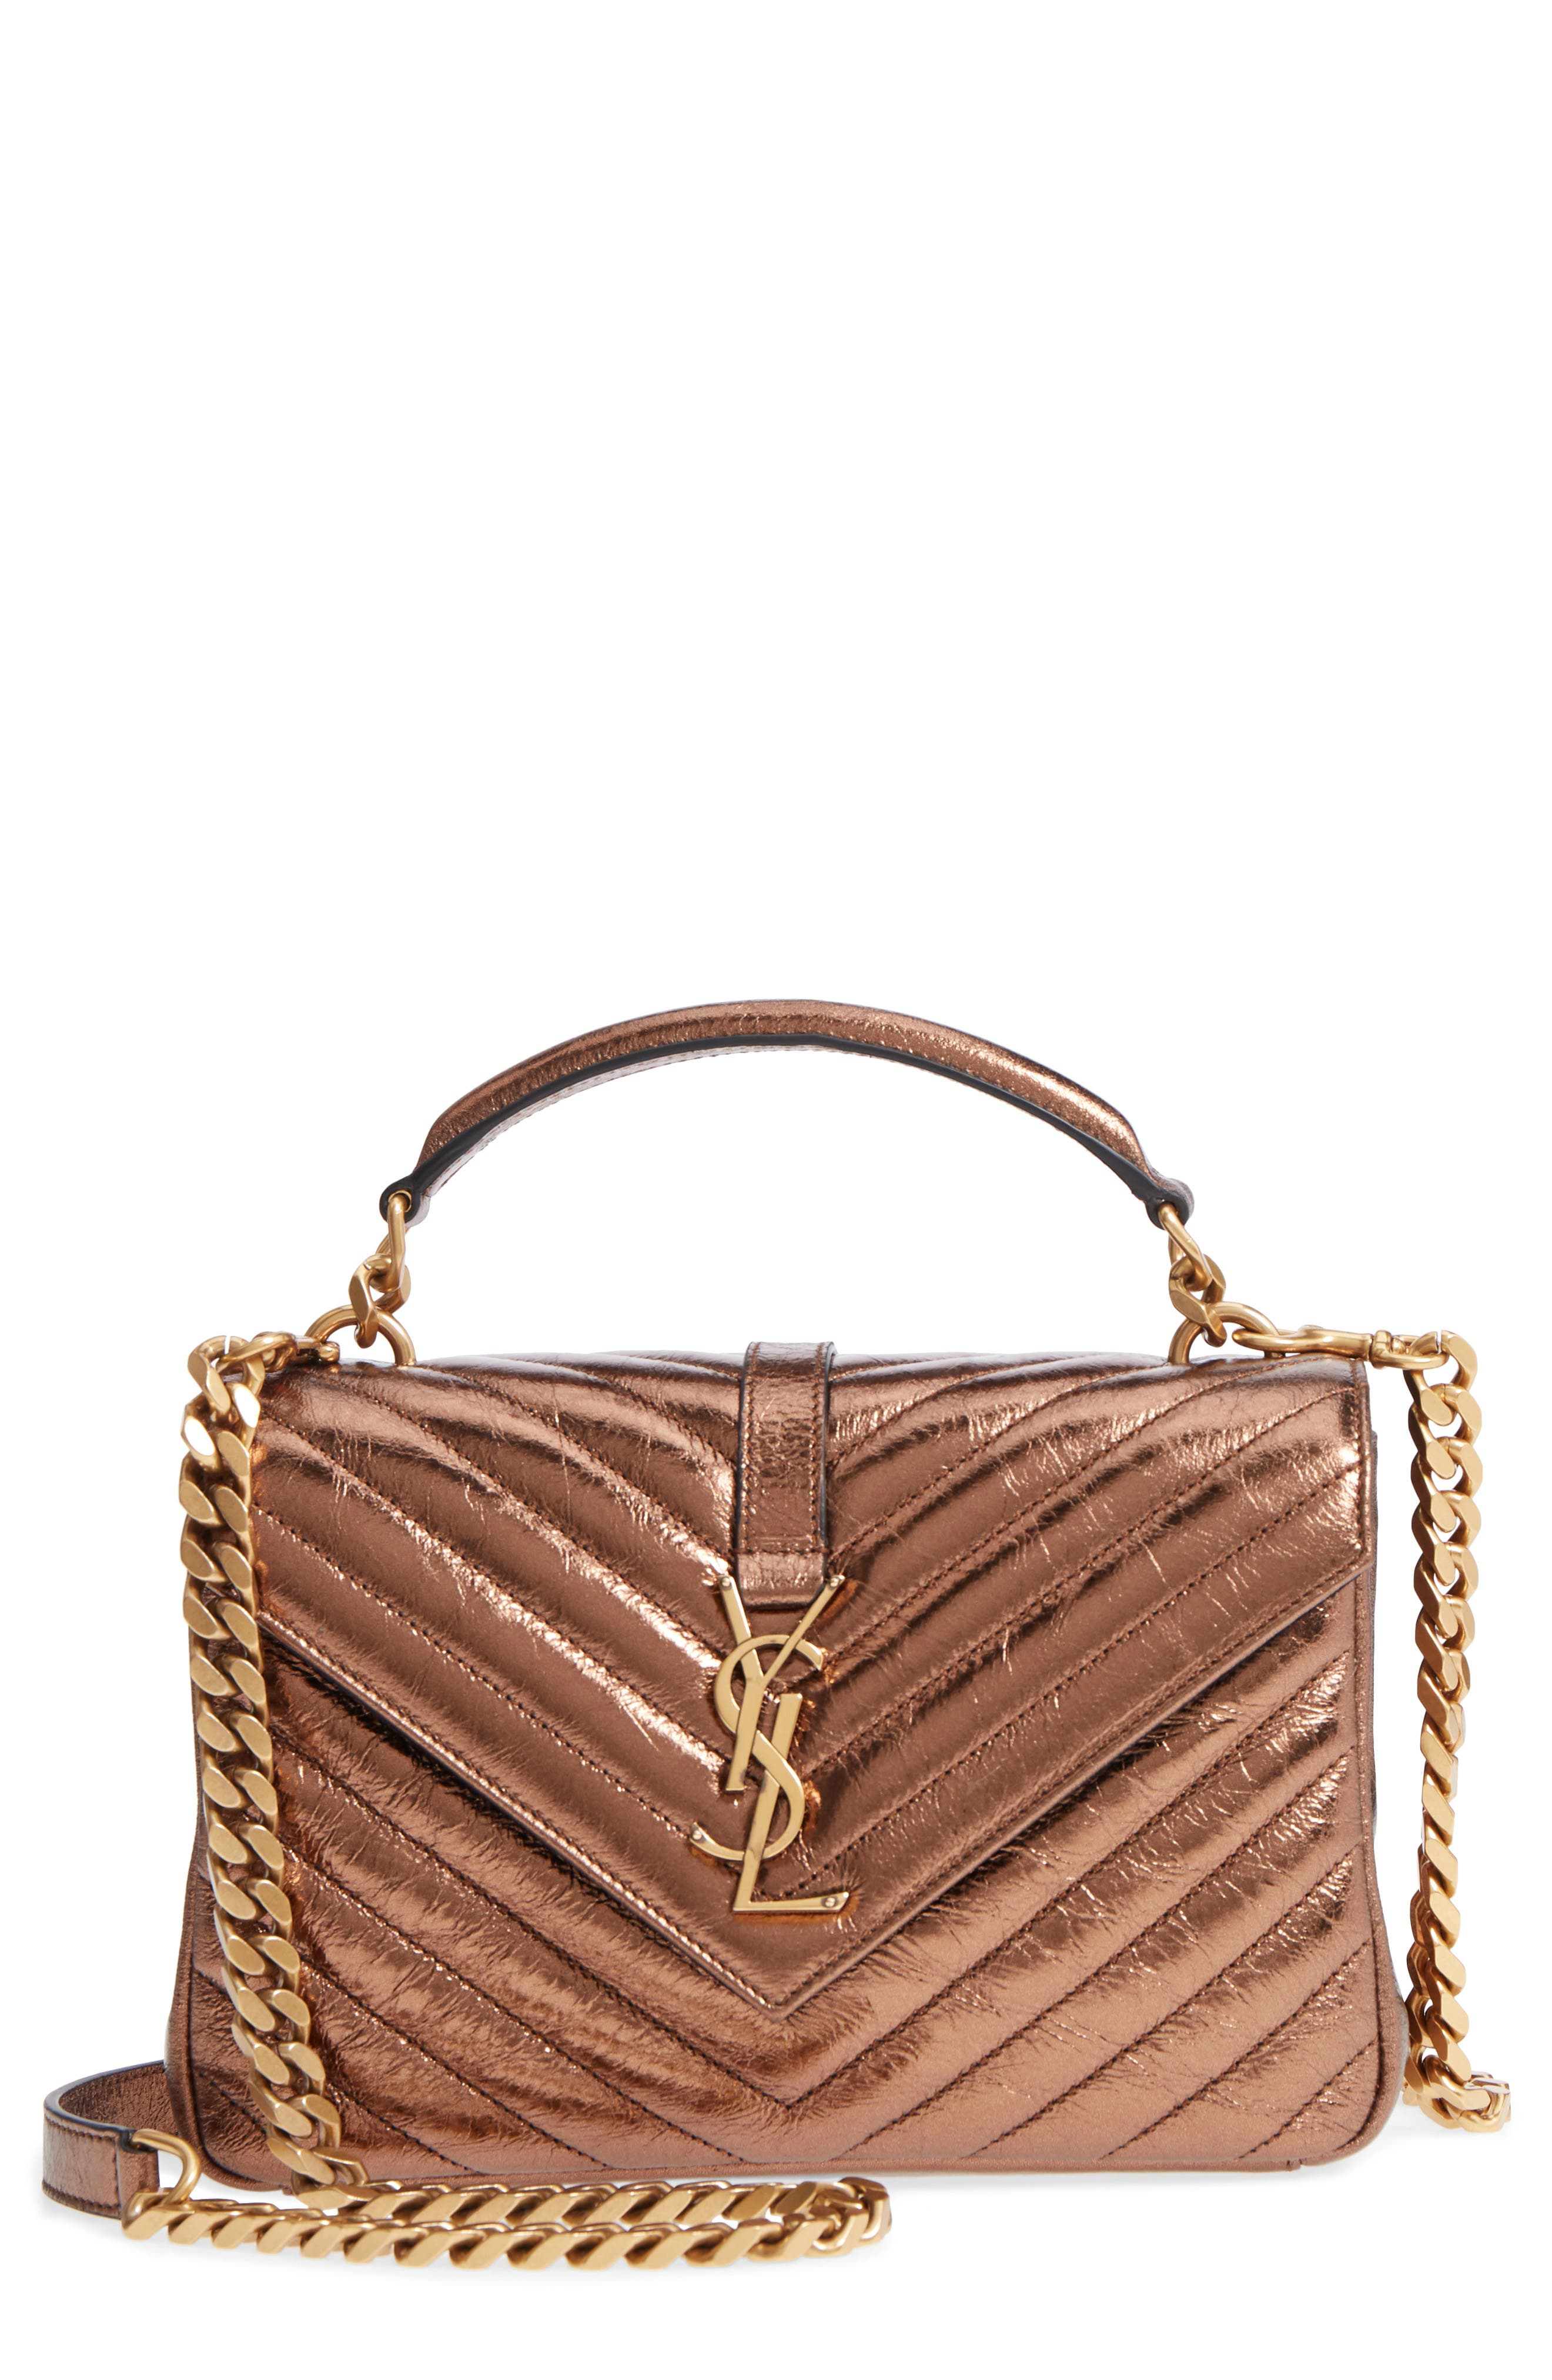 Saint Laurent Medium College Metallic Leather Shoulder Bag